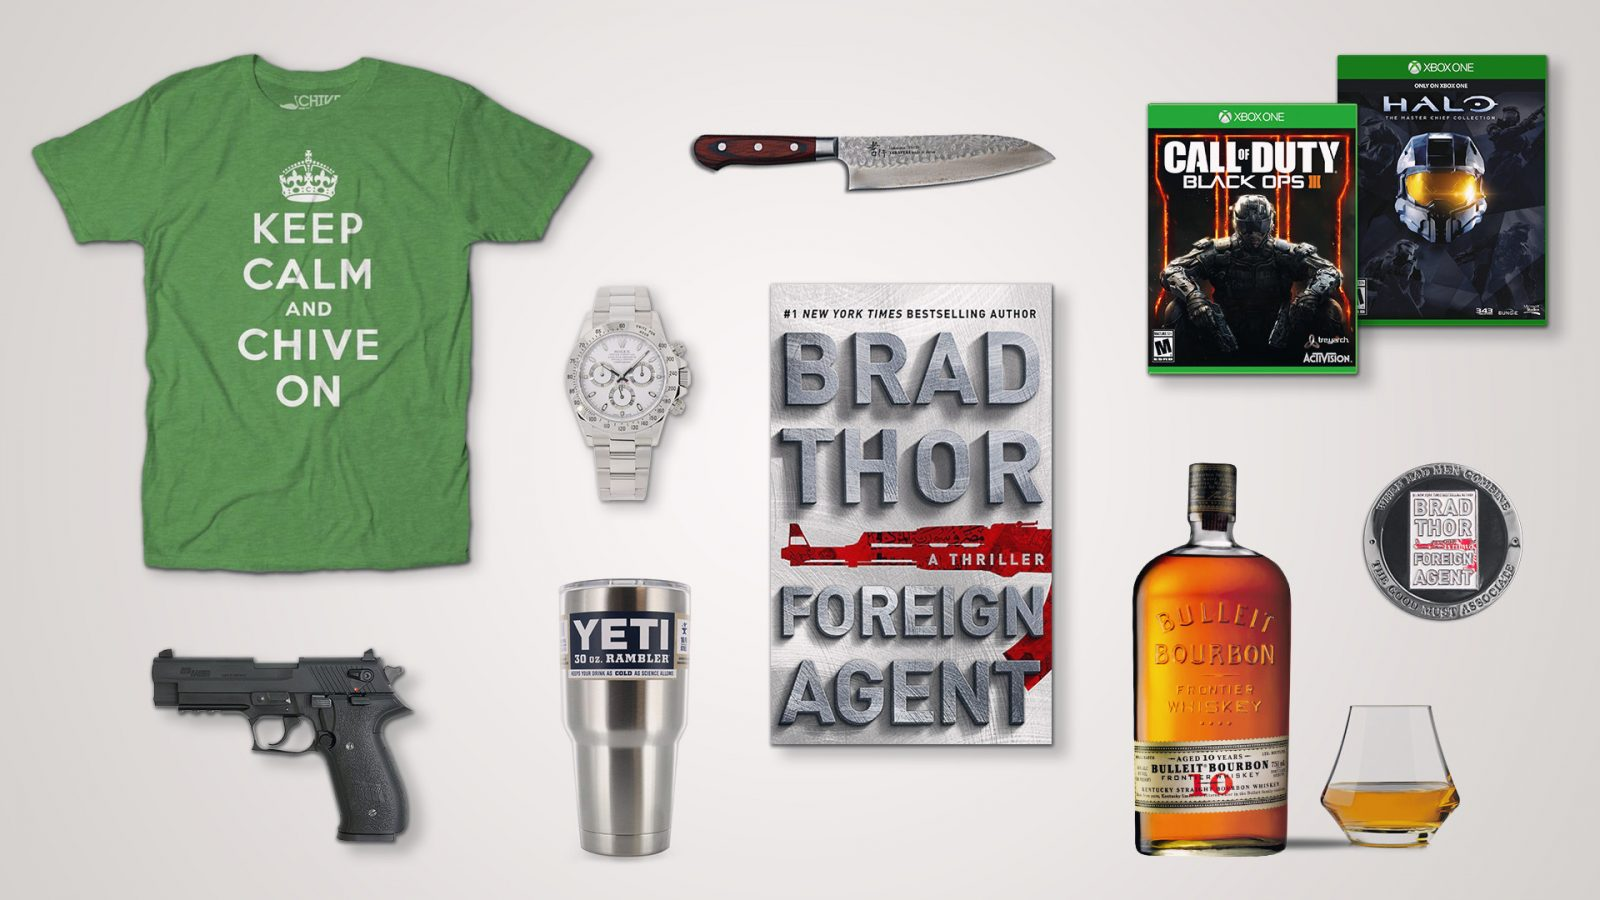 Scott Harvath's products from Foreign Agent